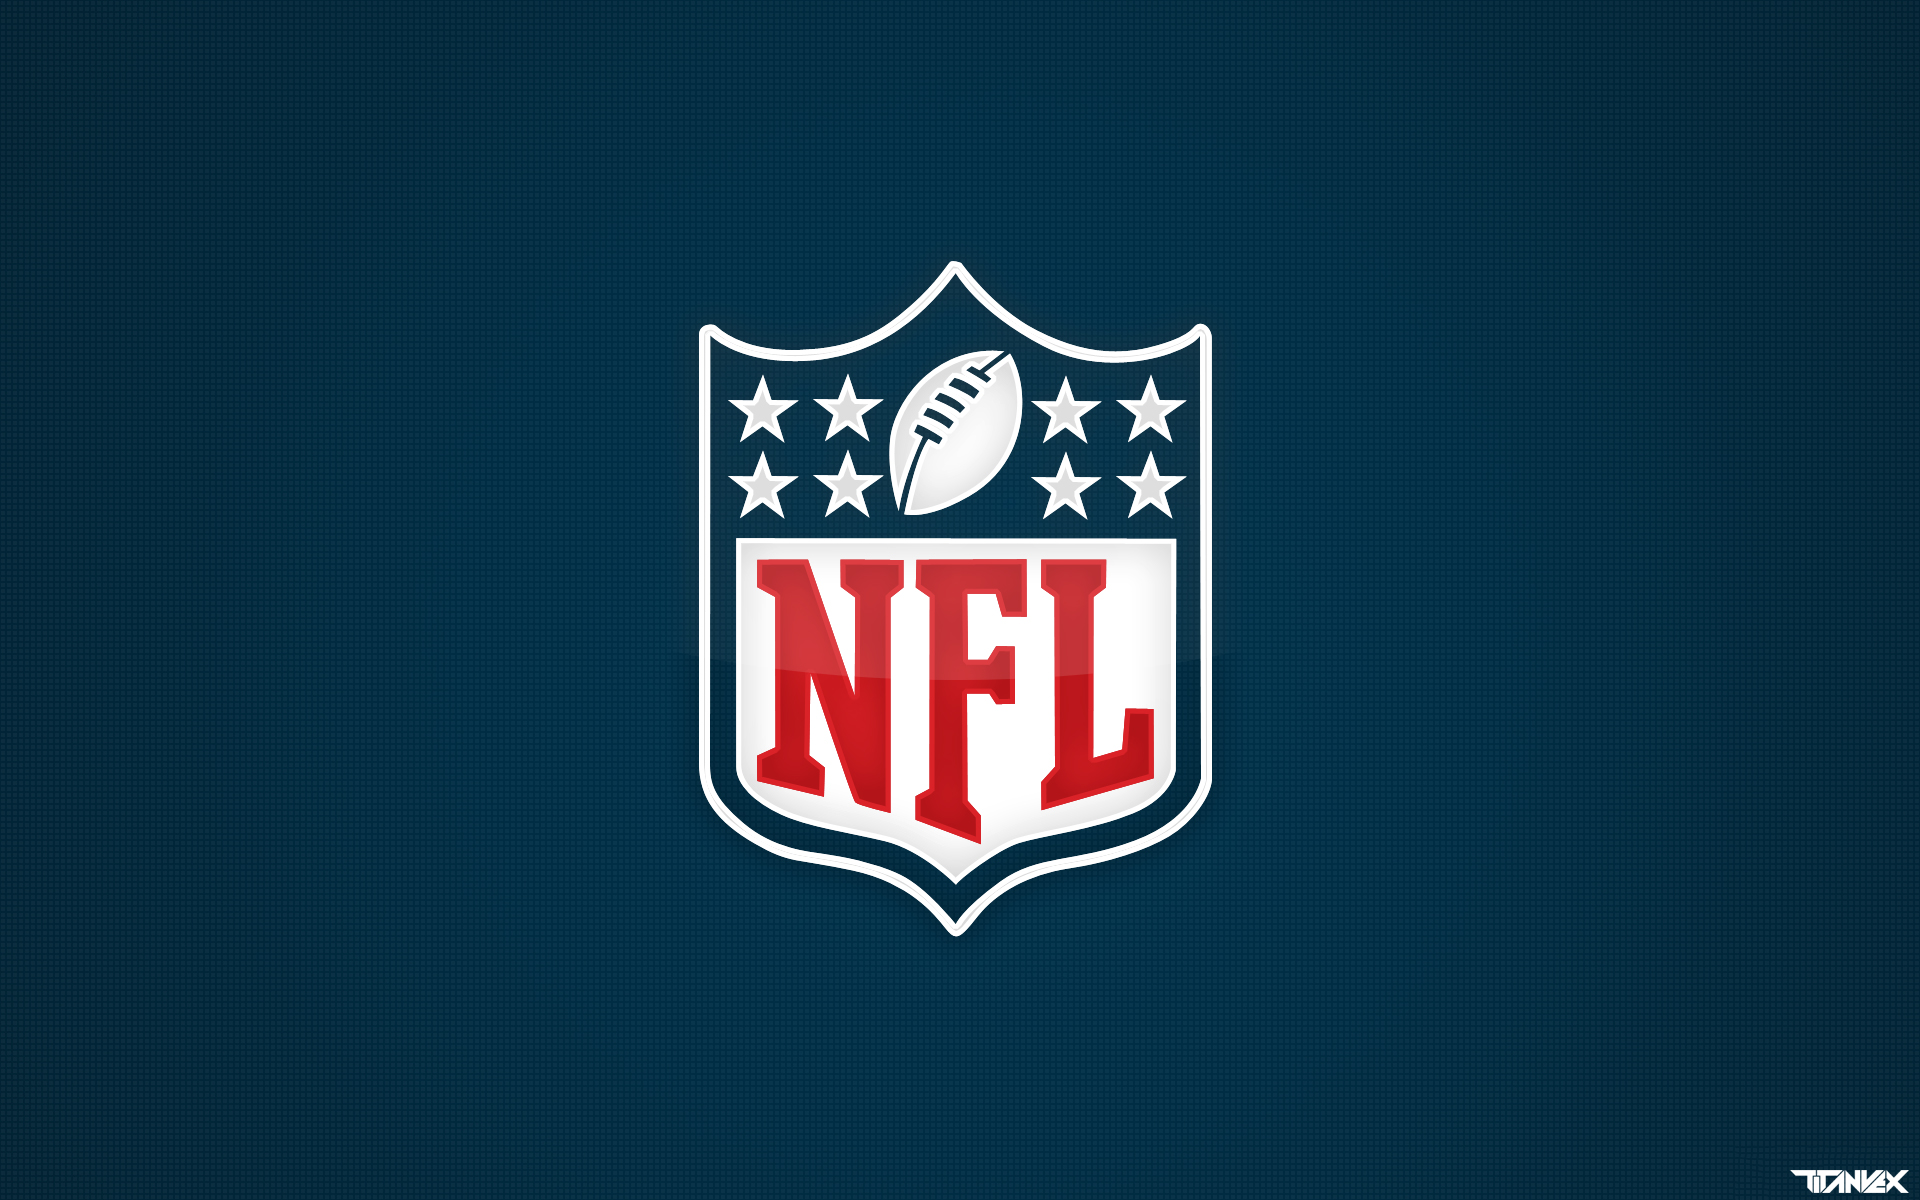 Nfl Wallpaper 59 Wallpapers – Adorable Wallpapers